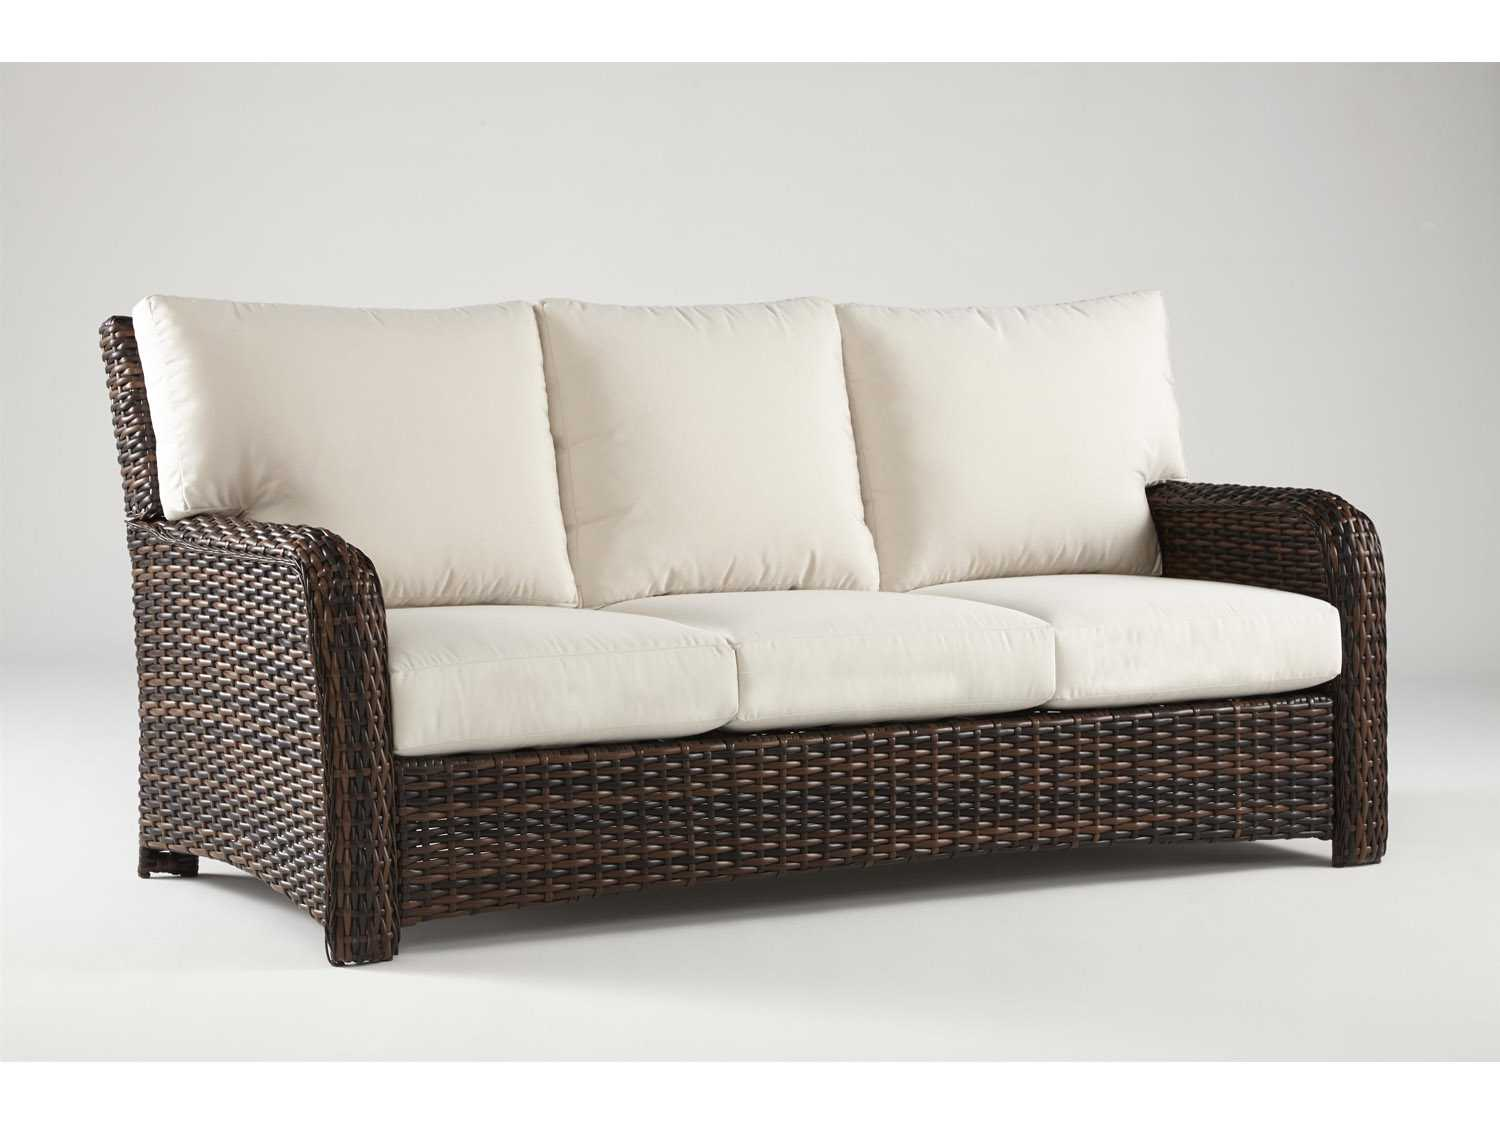 South Sea Rattan St Tropez Wicker Cushion Sofa 79303